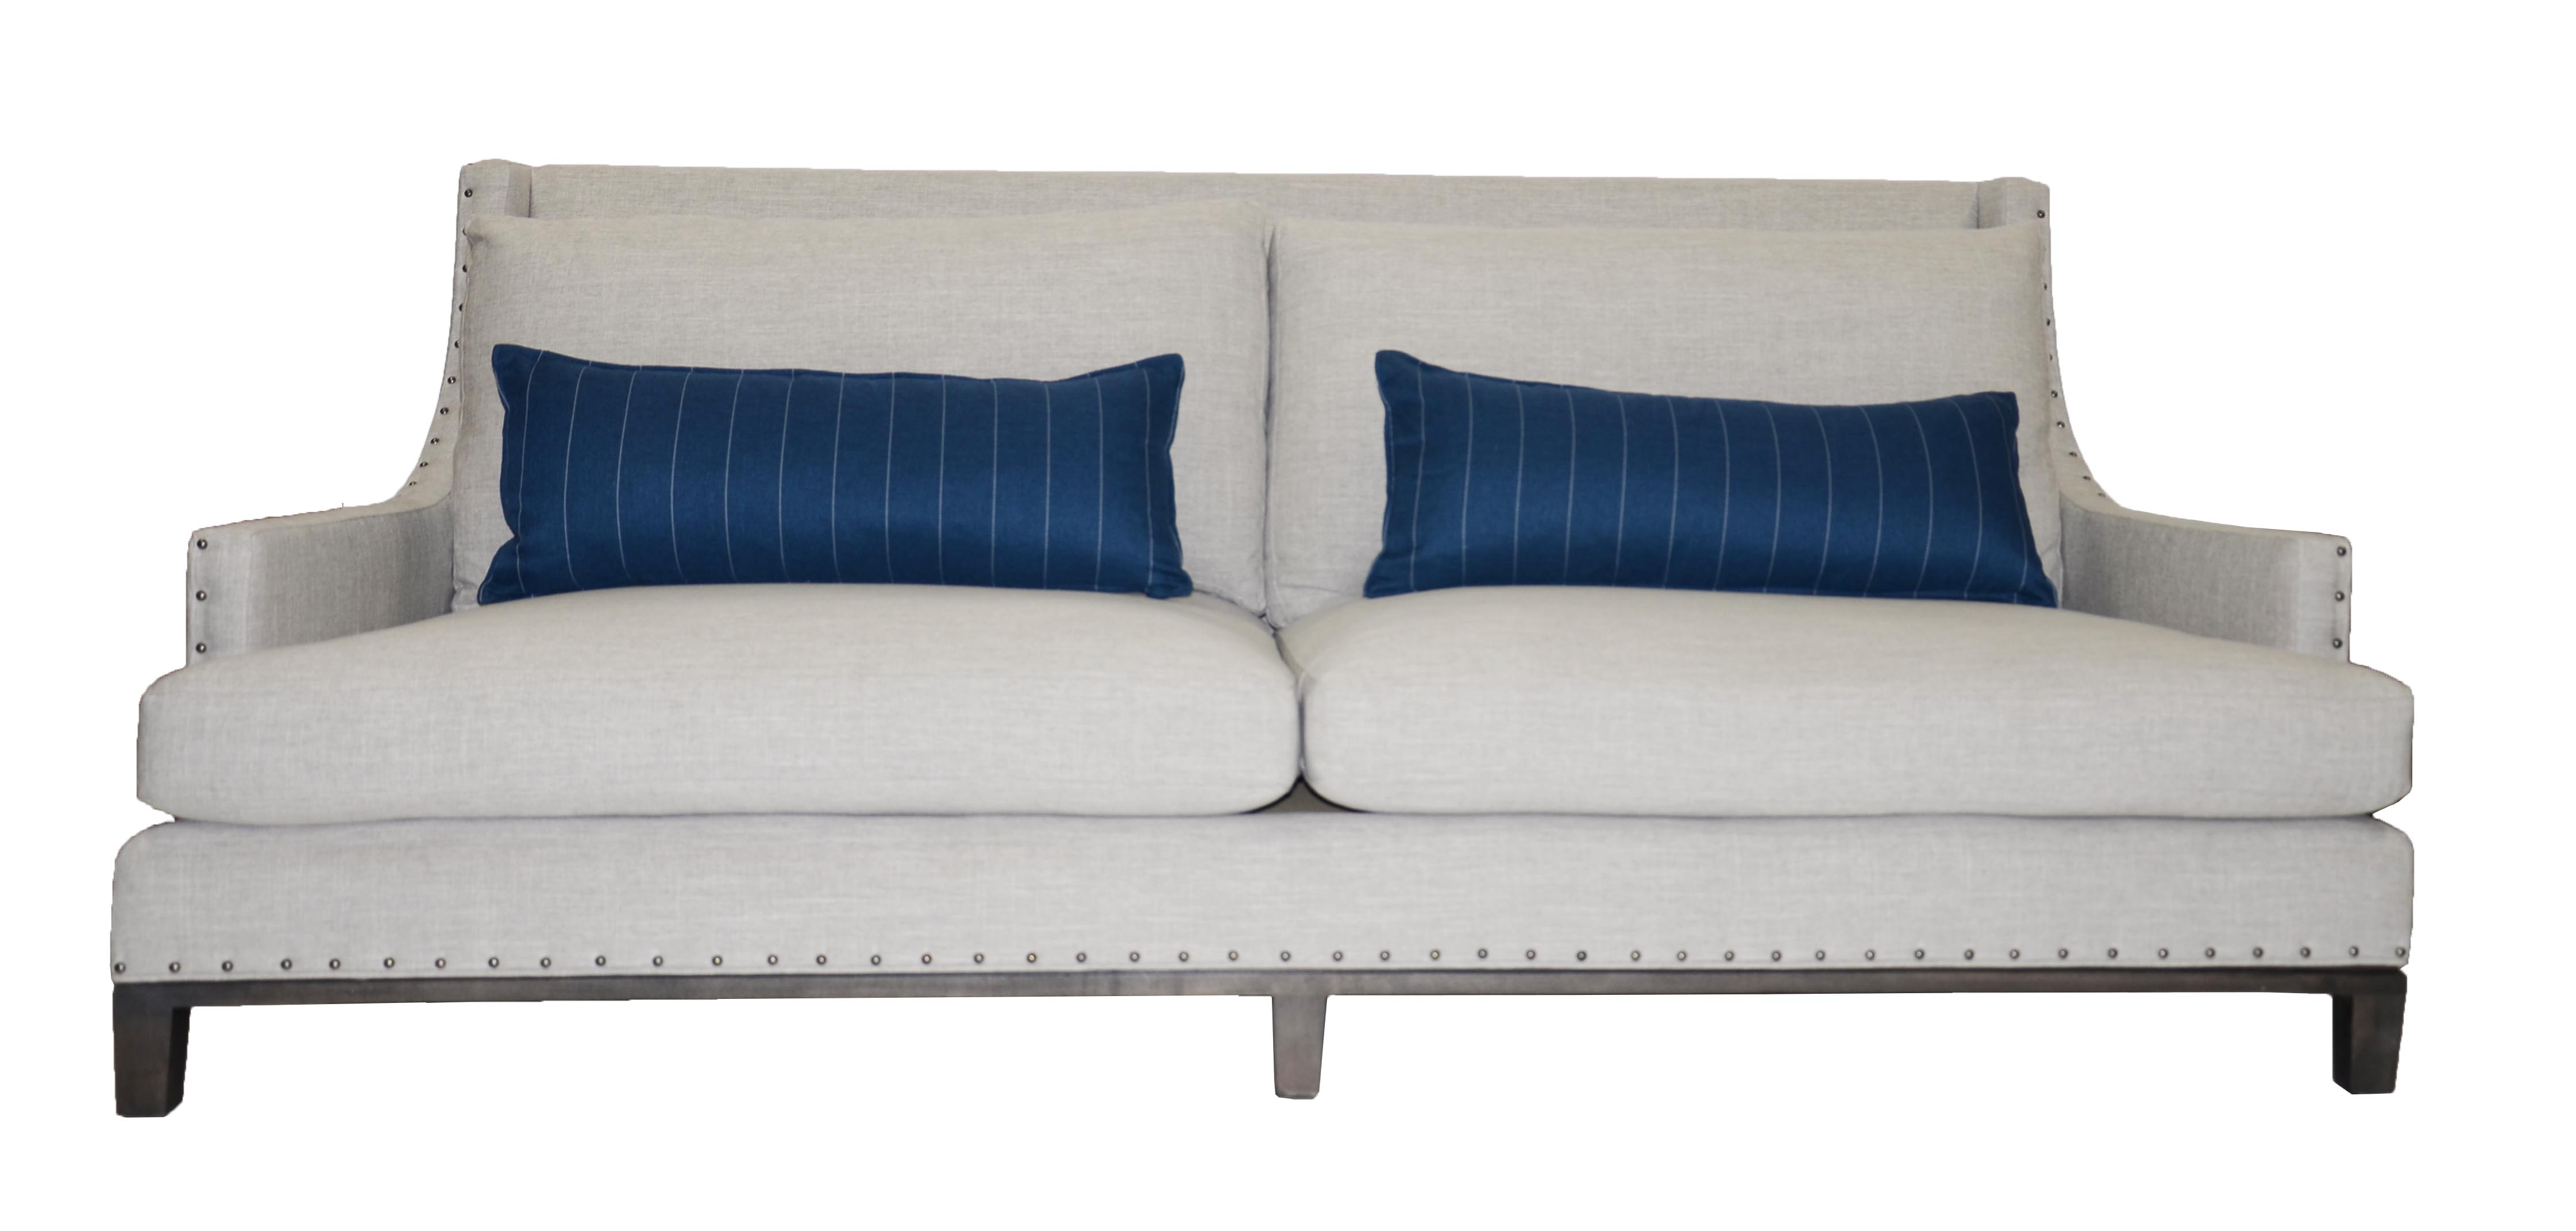 Vanguard Furniture Our Products W138 2s Dowlins Sofa